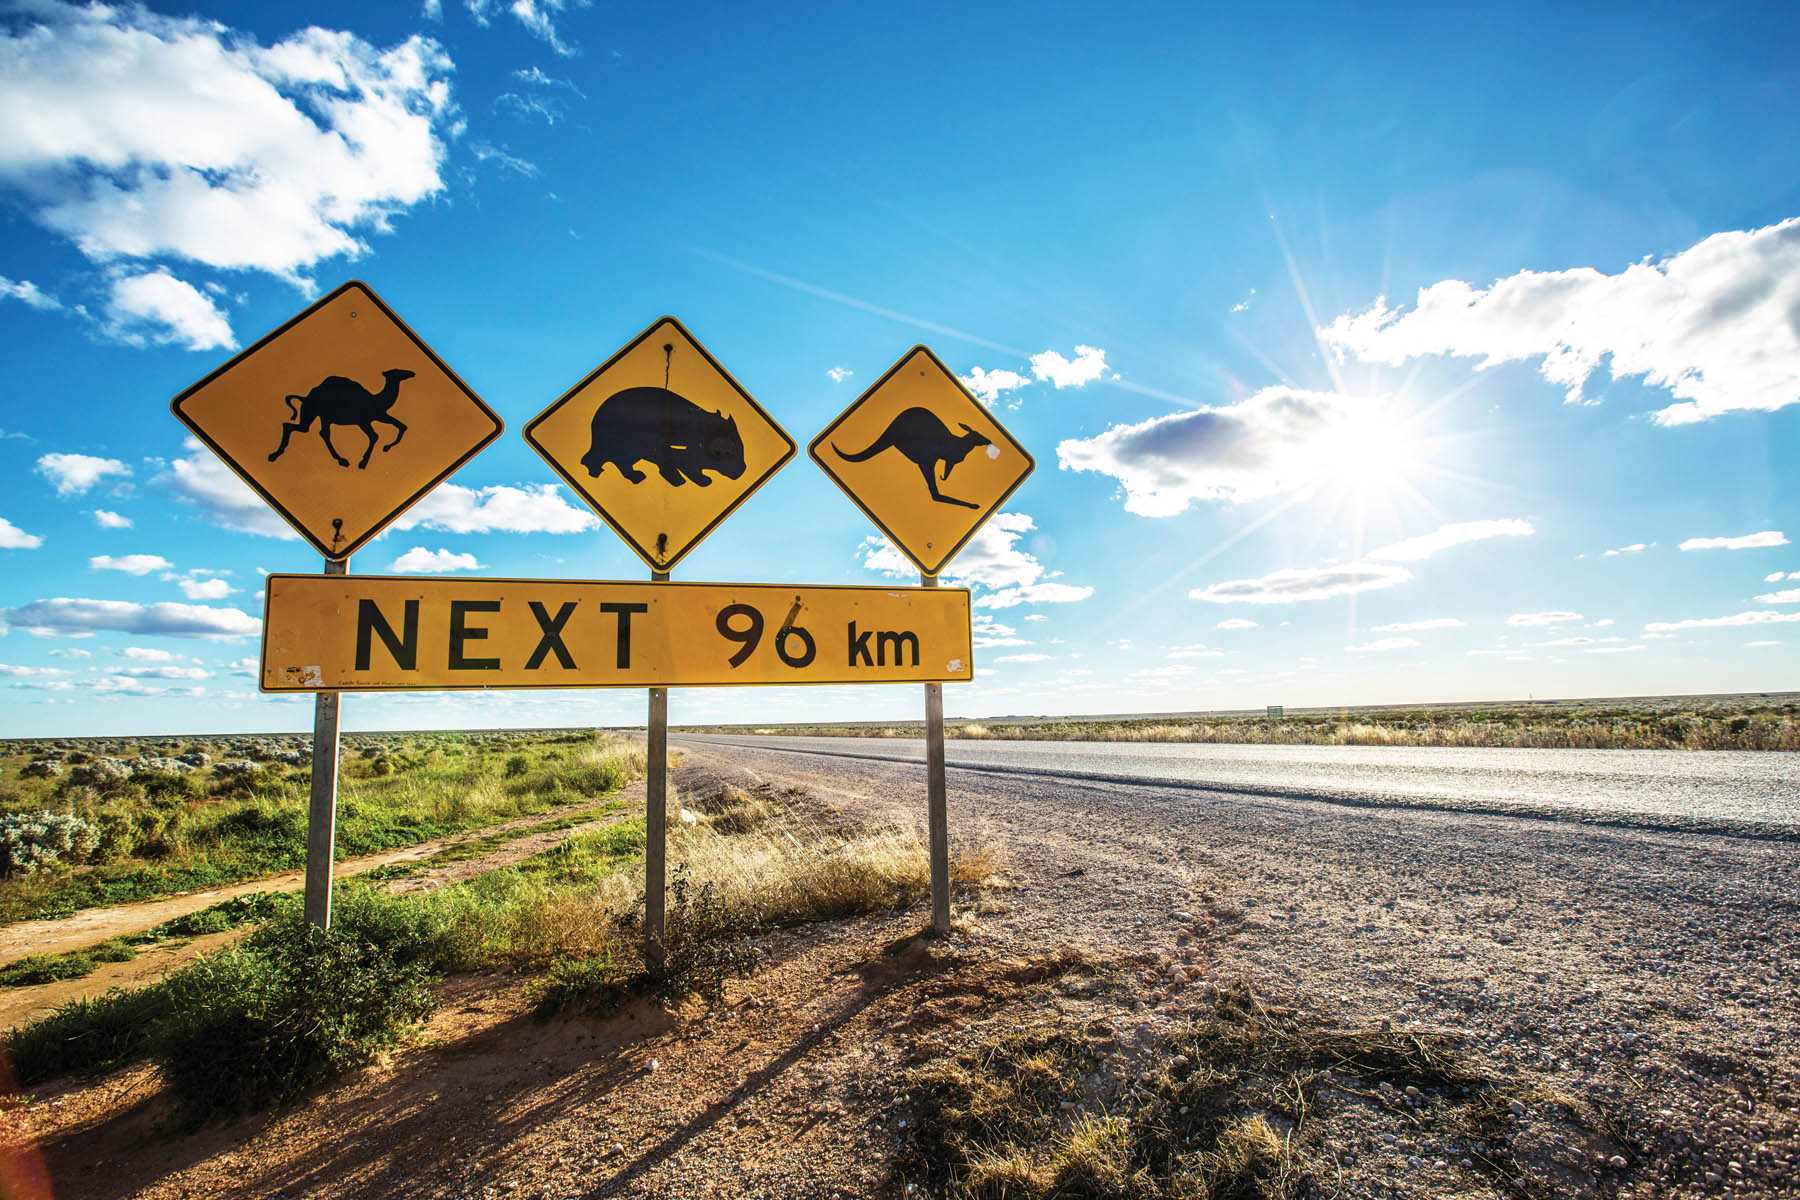 The wildlife crossing sign on the Nullarbor Plain, in outback Australia.